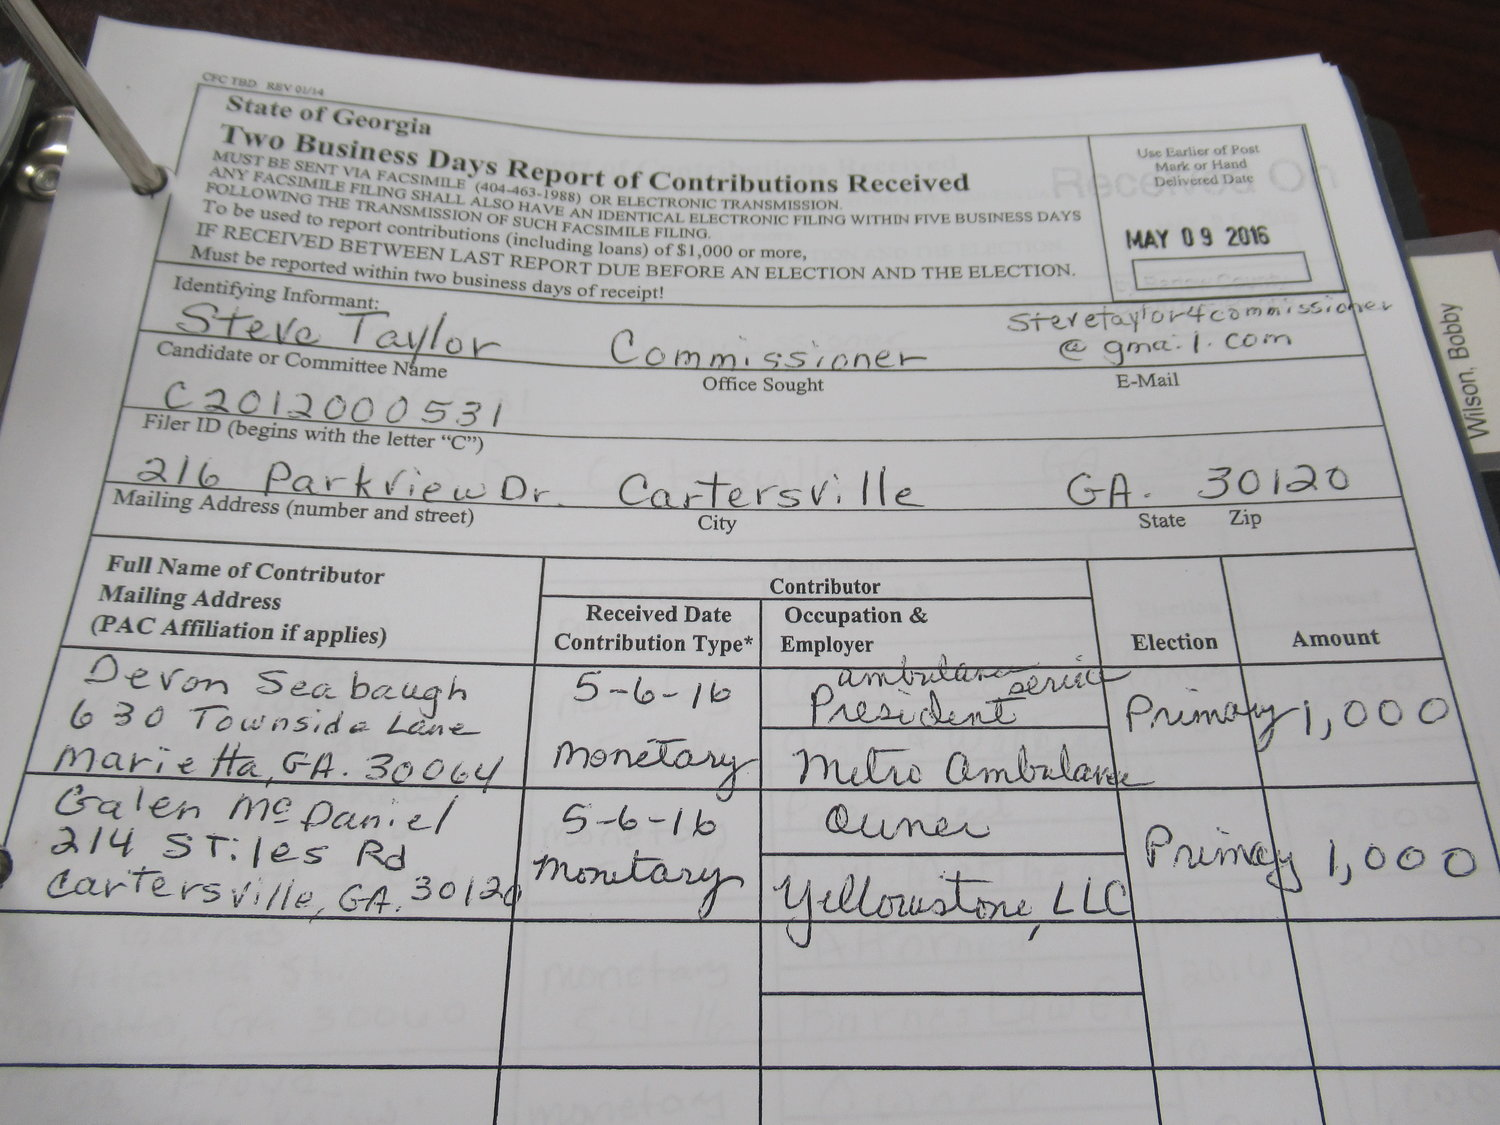 Disclosure forms from 2016 indicate Devan Seabaugh, of MetroAtlanta Ambulance Service, contributed $1,000 to Bartow County Commissioner Steve Taylor's re-election efforts.